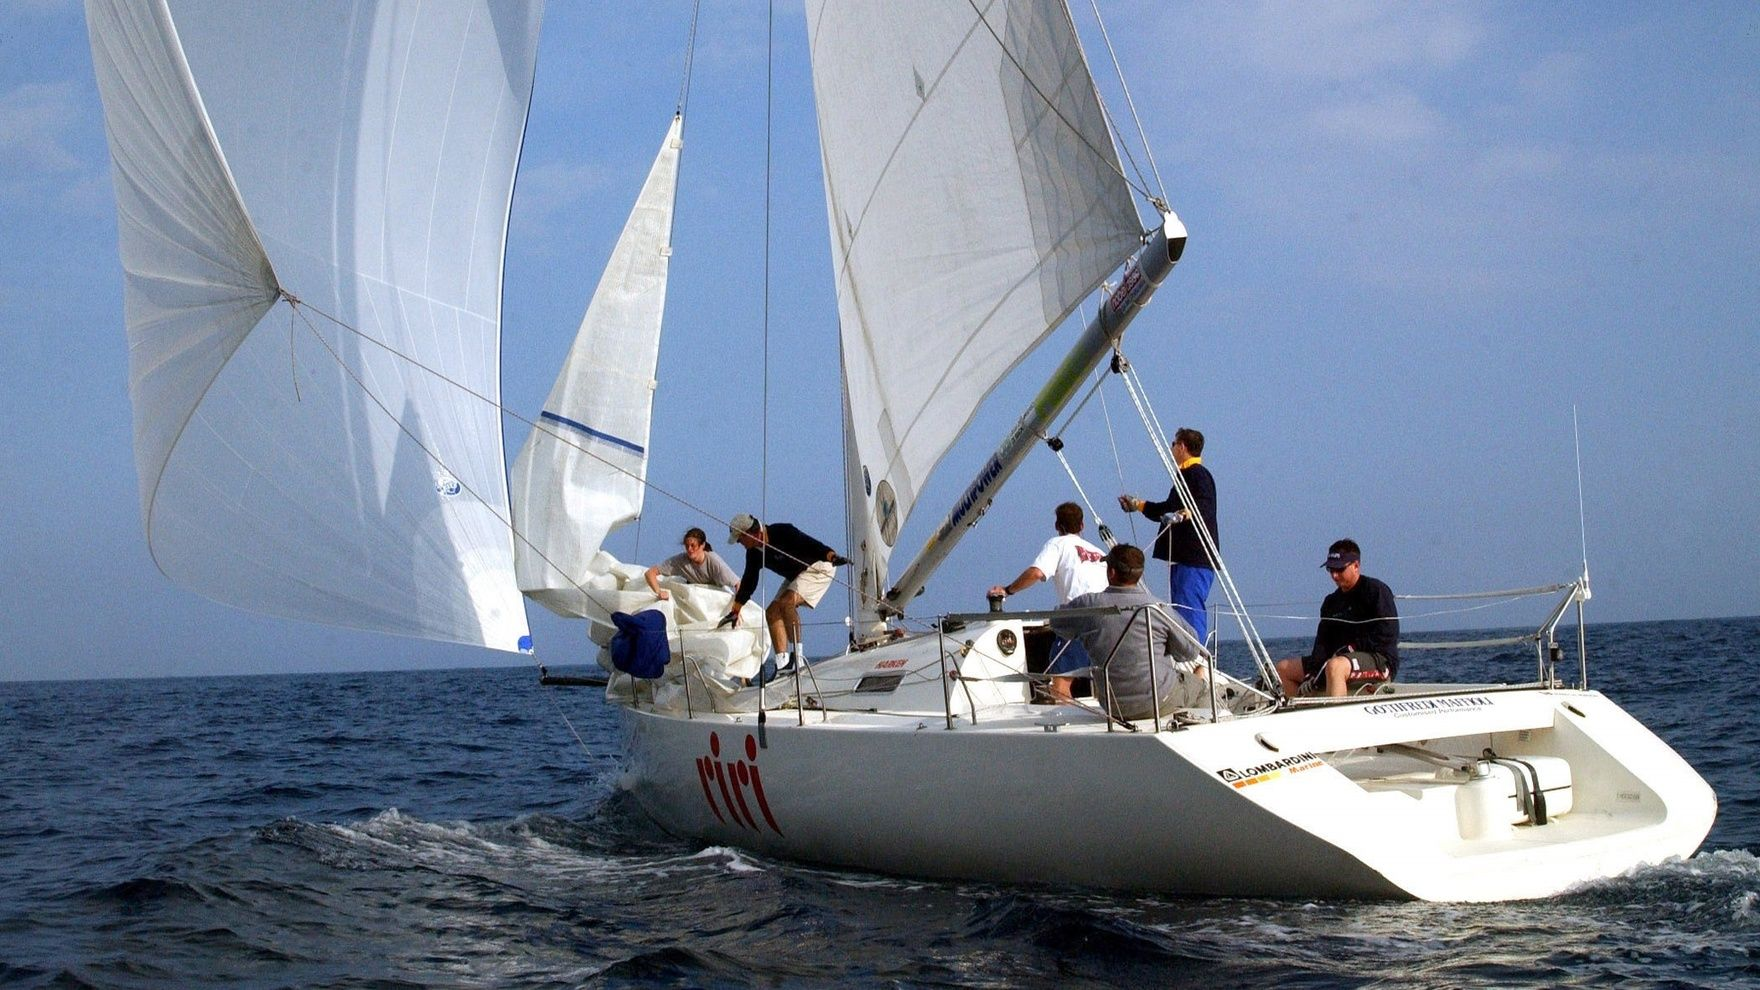 International Bareboat Skipper IYT practice in Turkey